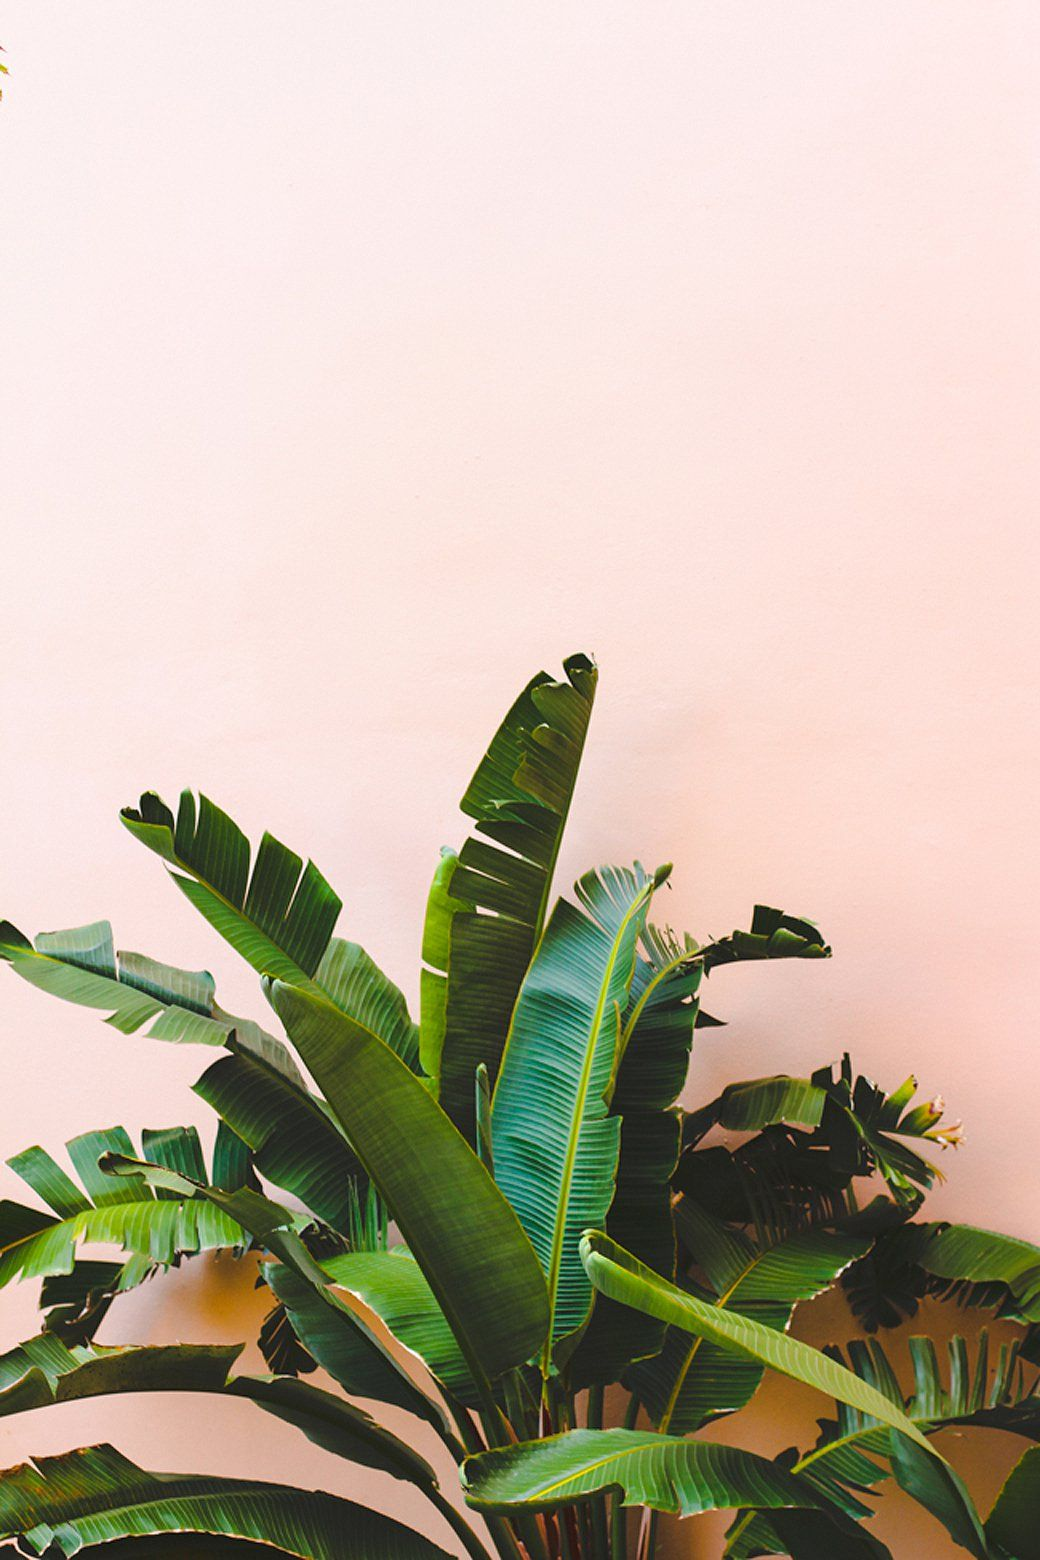 Plants Tumblr Trends 8 Leaves To Love 43 Tropical Leaf Decor Ideas